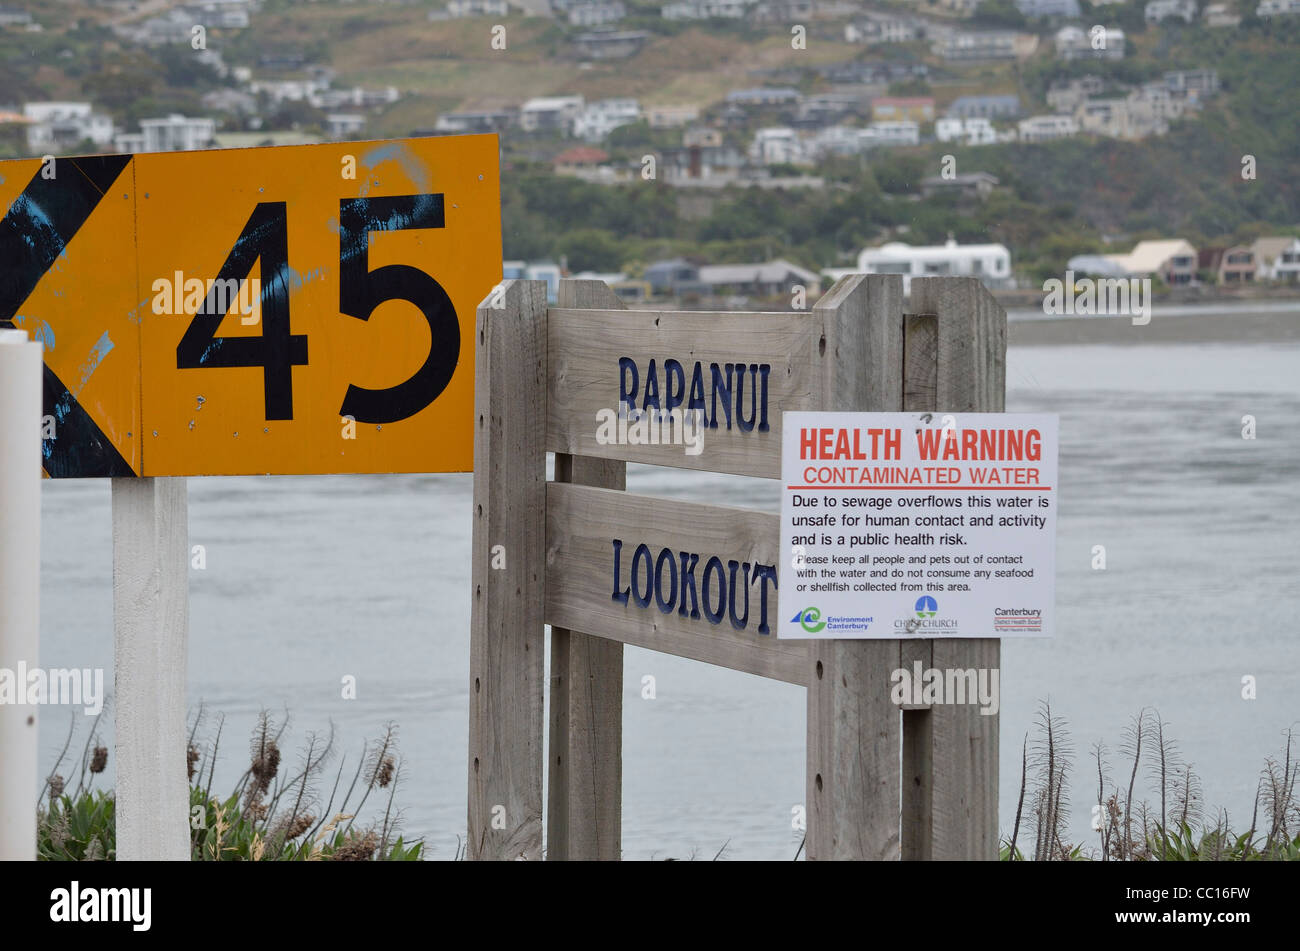 Contaminated water sign Rapanui Lookout New Zealand - Stock Image